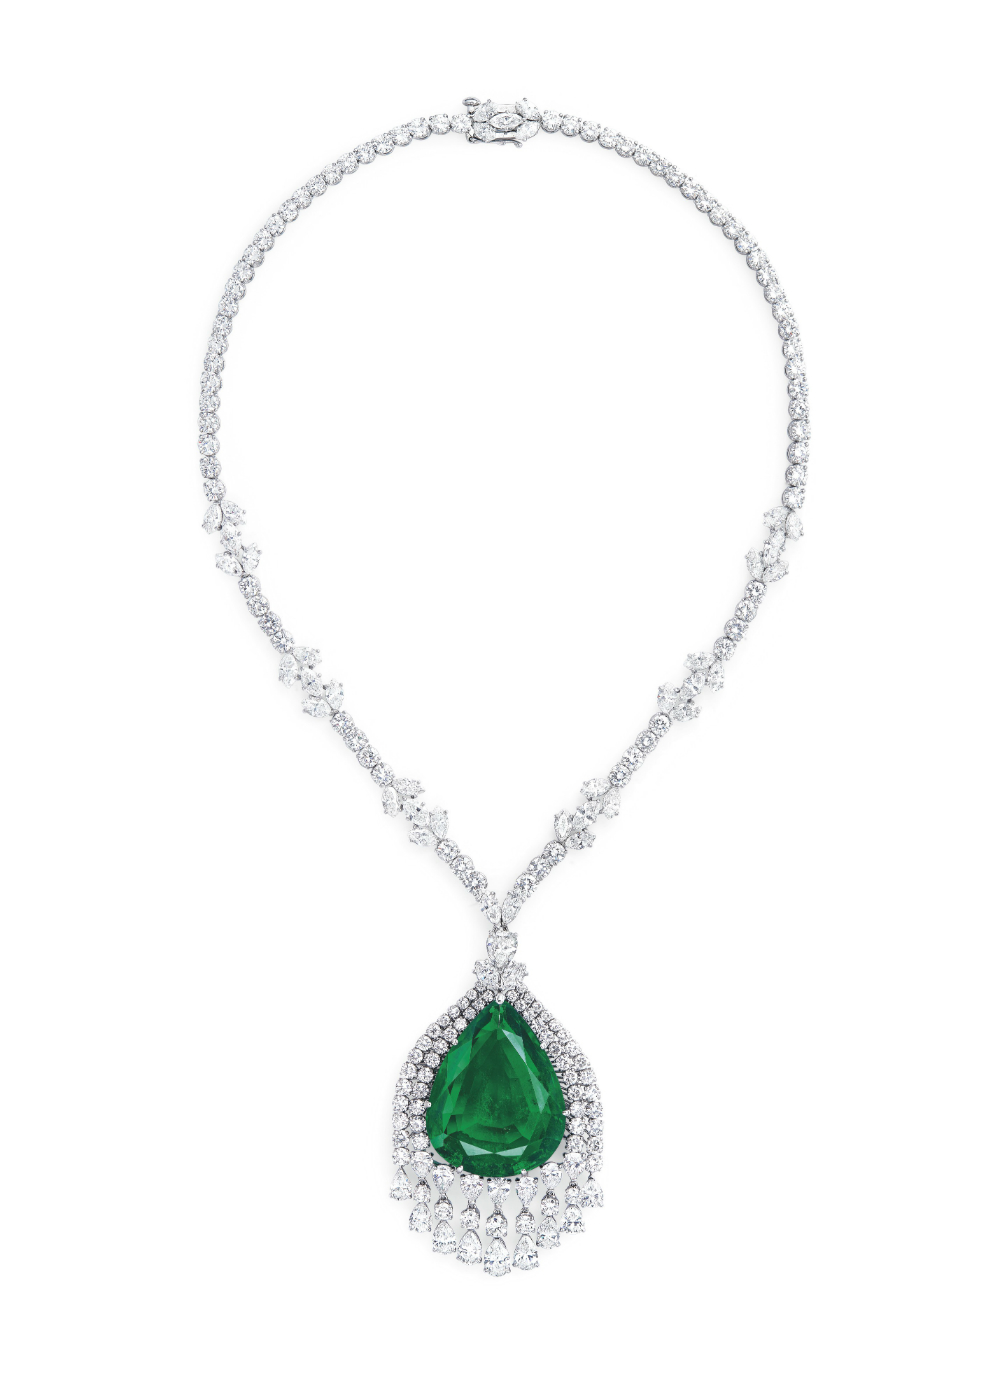 Russian Empress Catherine the Great Necklace